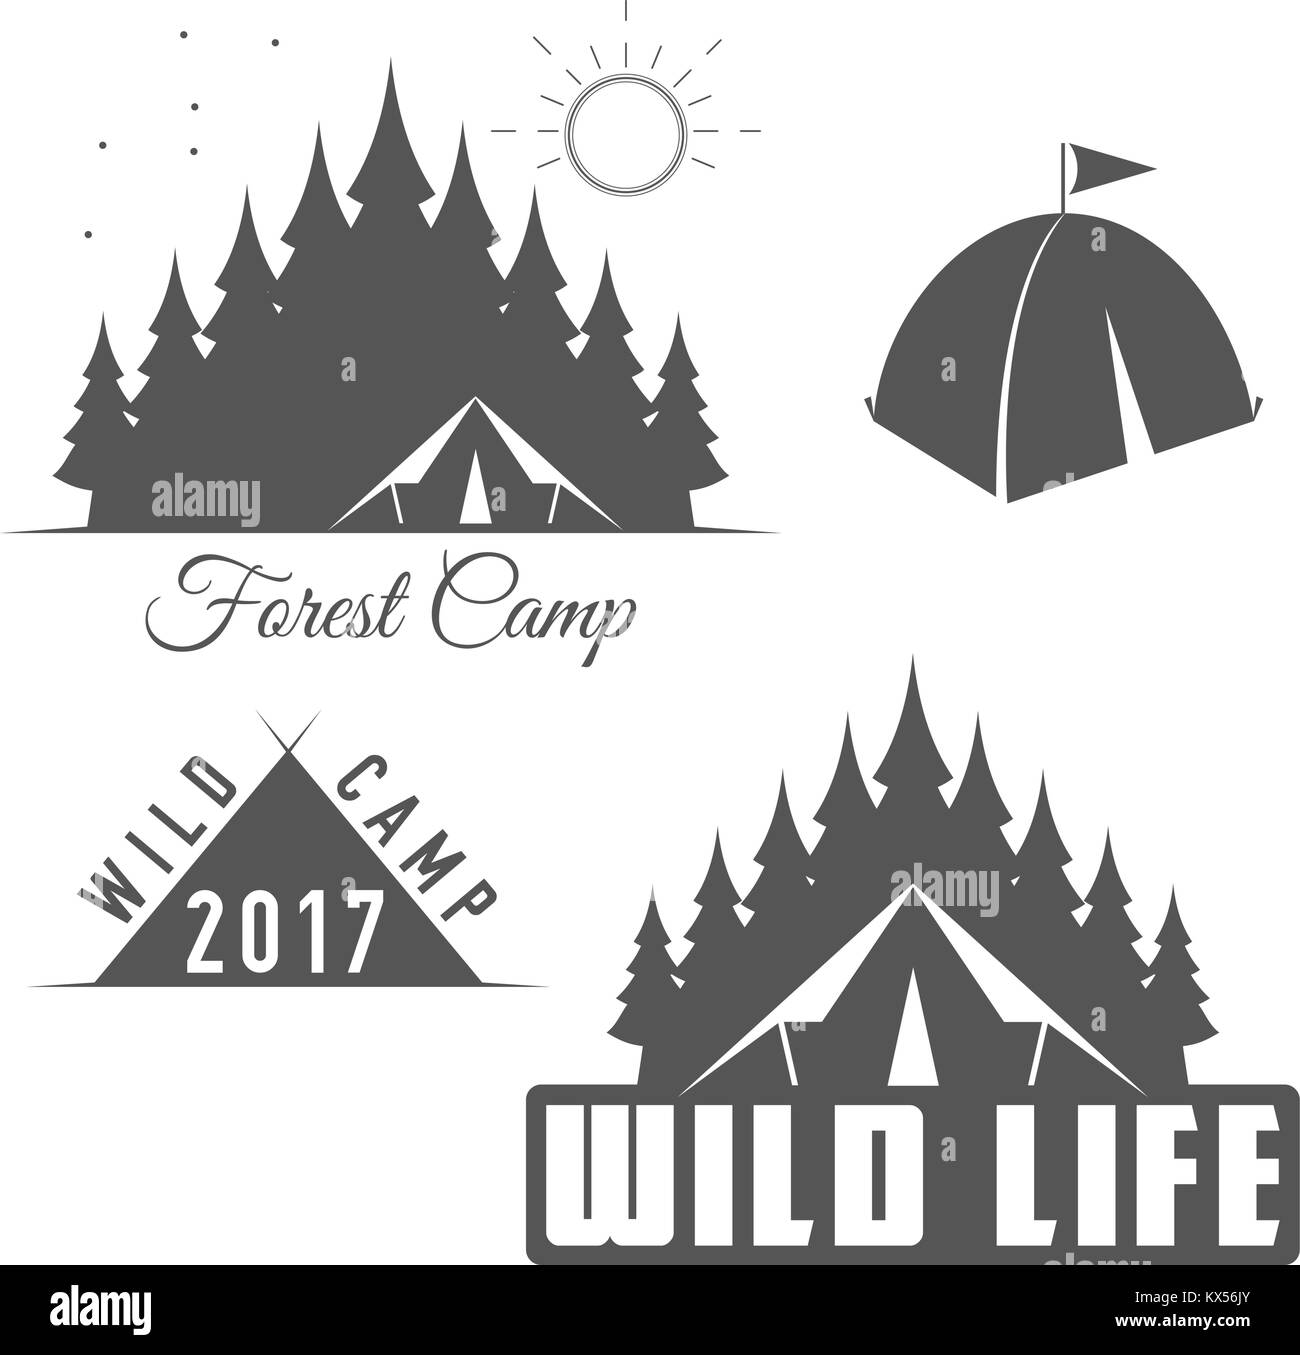 Wild Life - Forest Camp - Scout Club Vector Emblem - Stock Vector